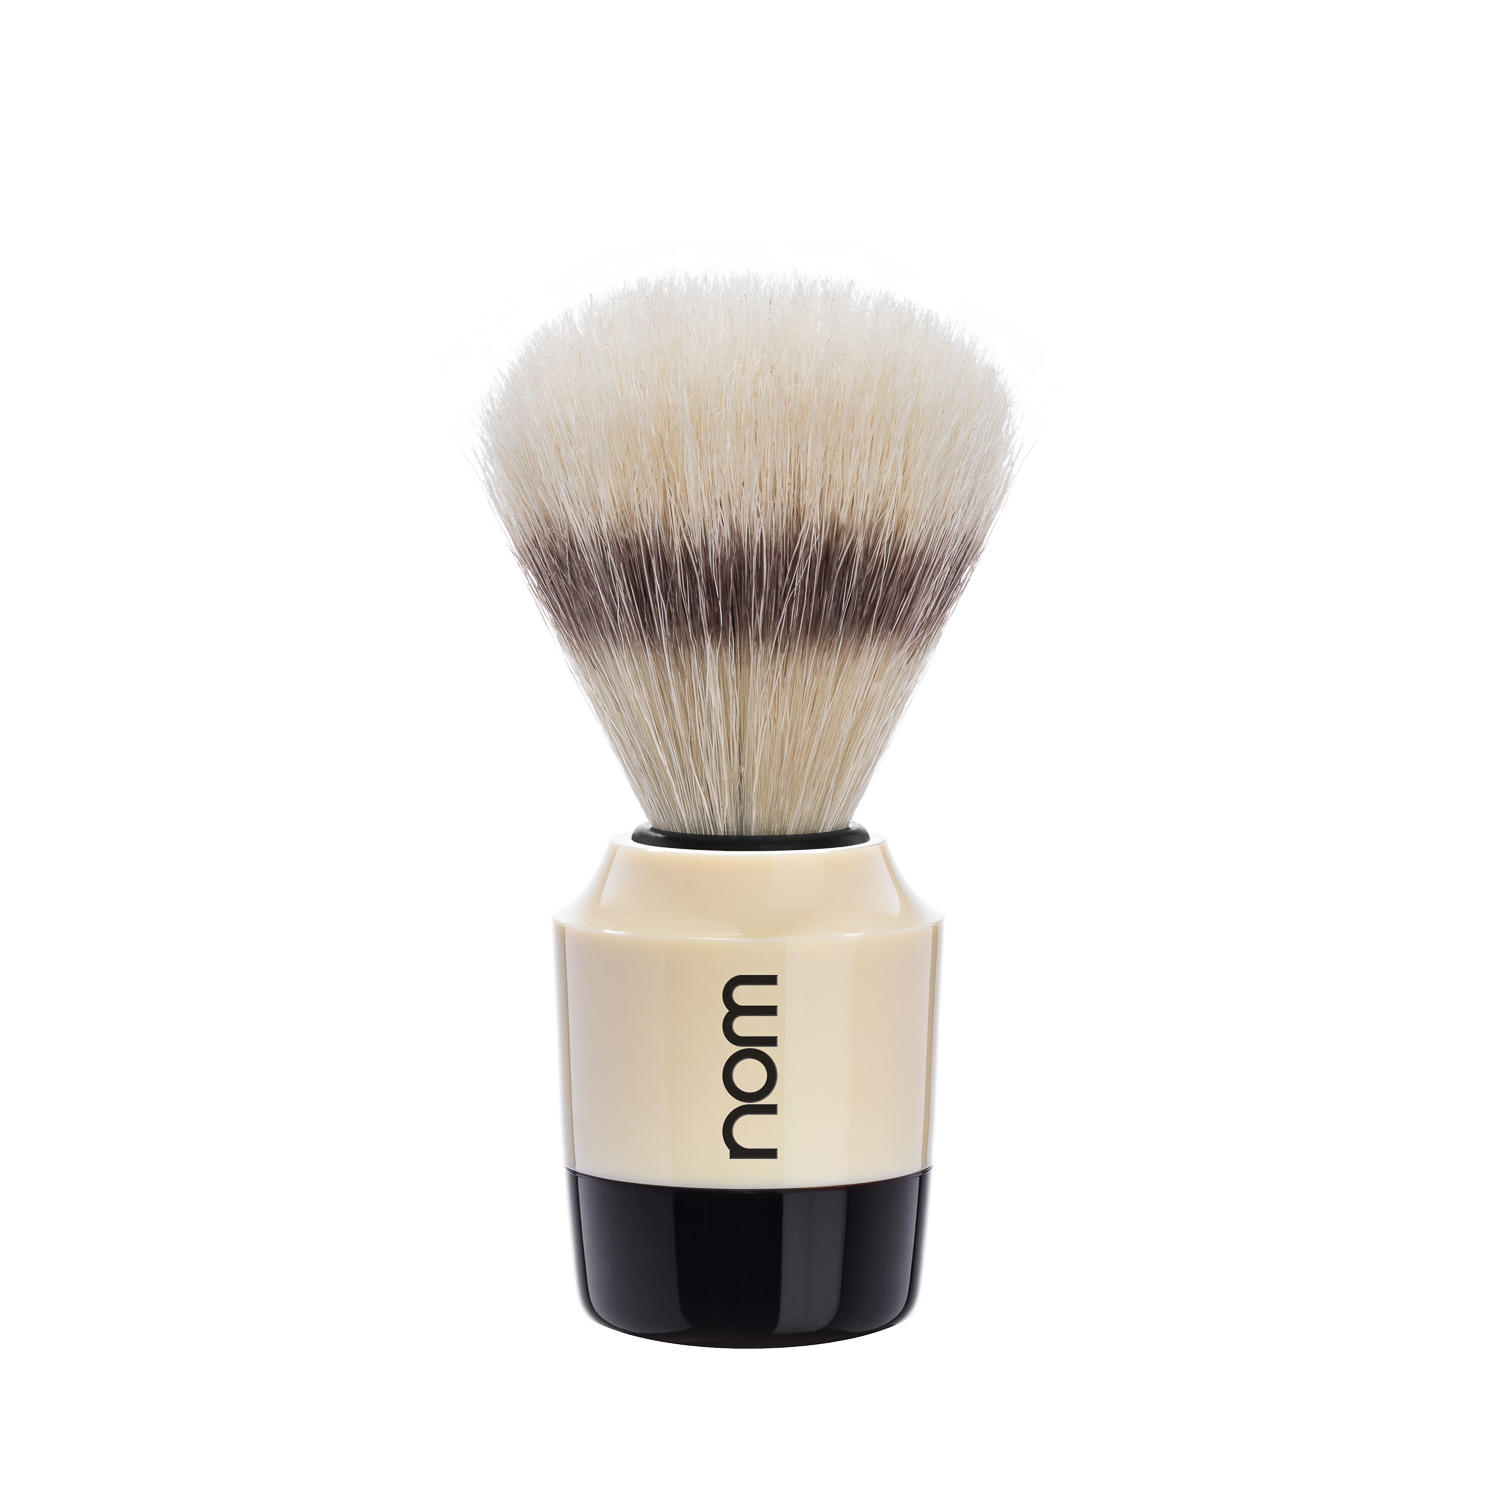 MARTEN41CR  NOM, MARTEN cream, pure bristle shaving brush